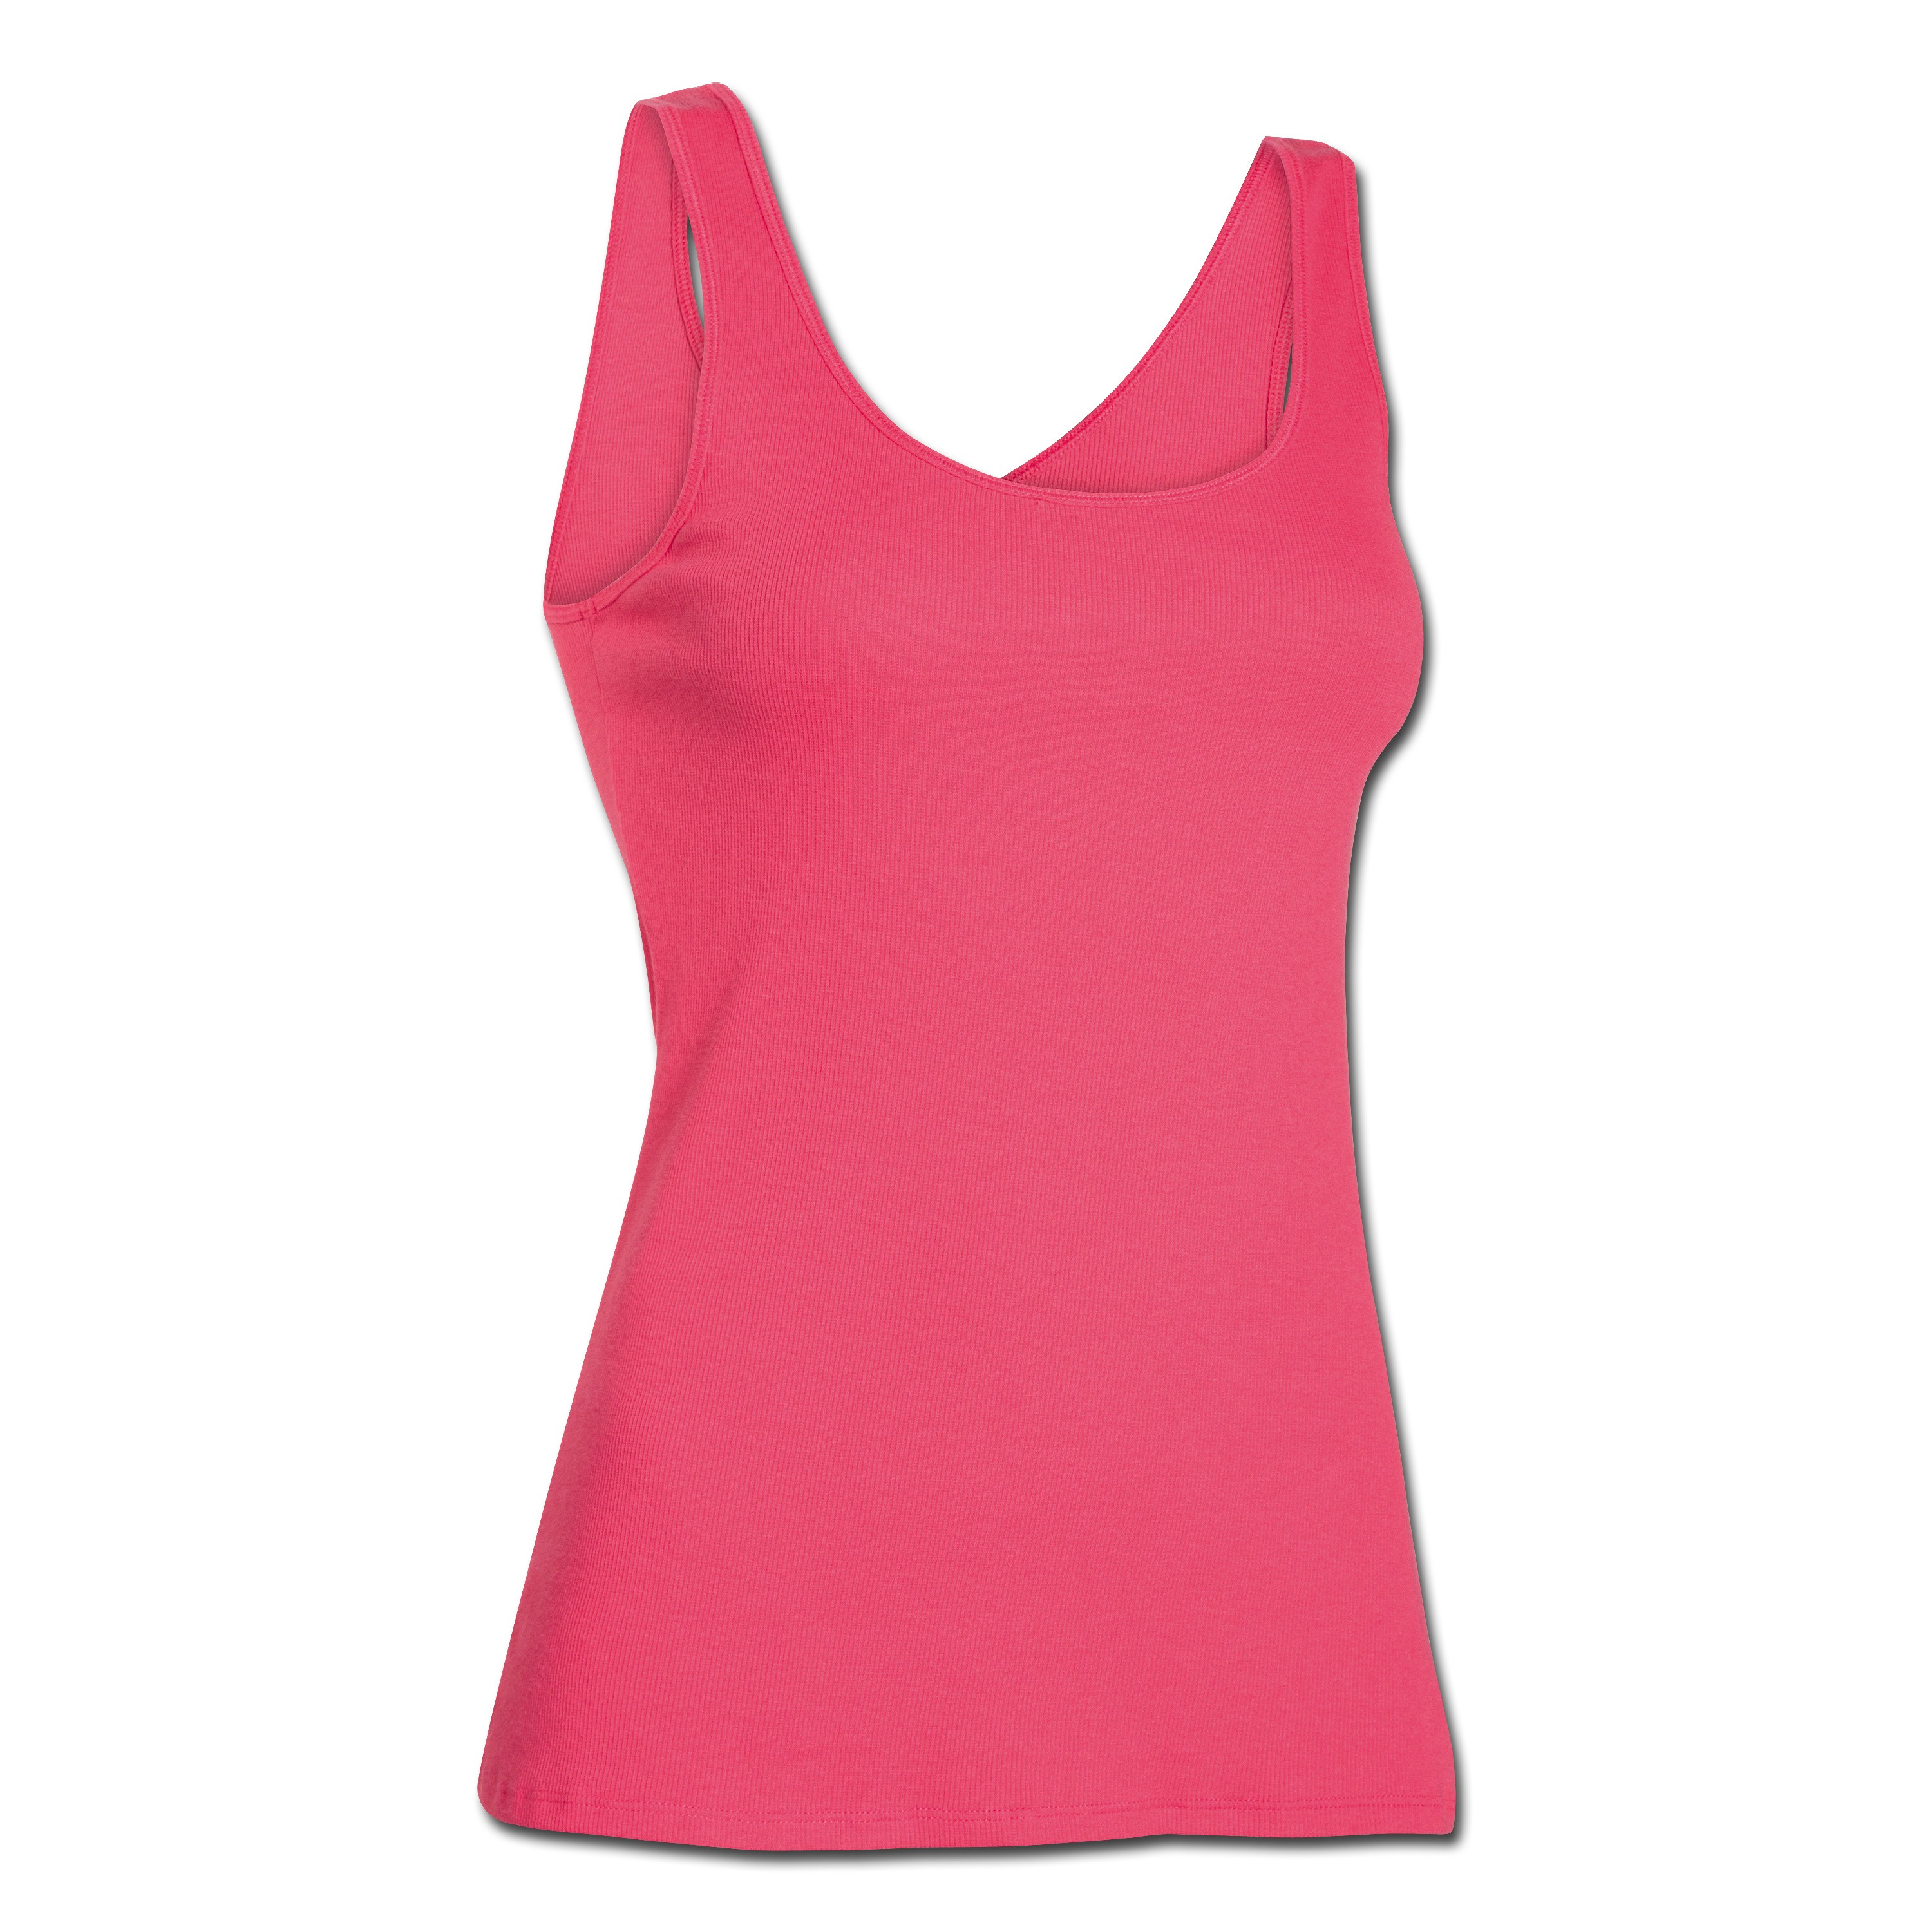 Under Armour Women Tank Top Double Threat pink